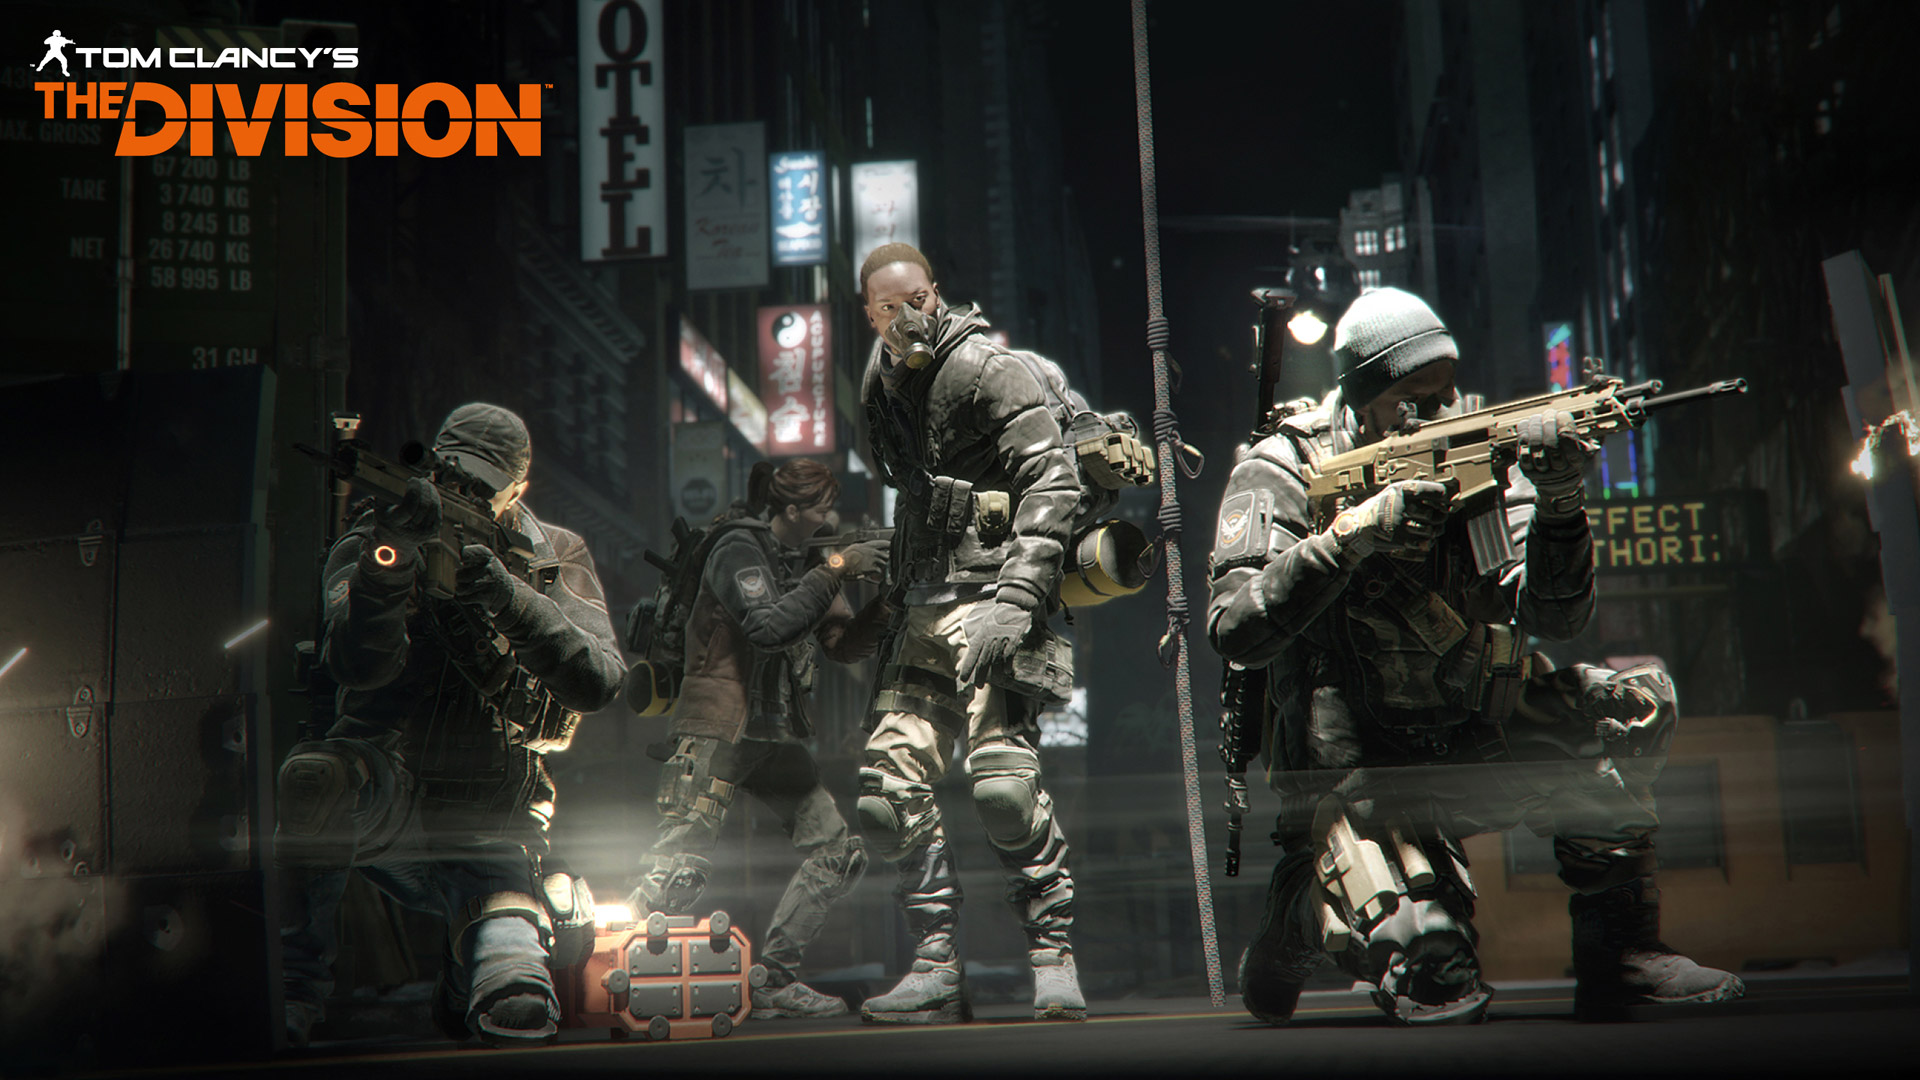 The Division Wallpaper in 1920x1080